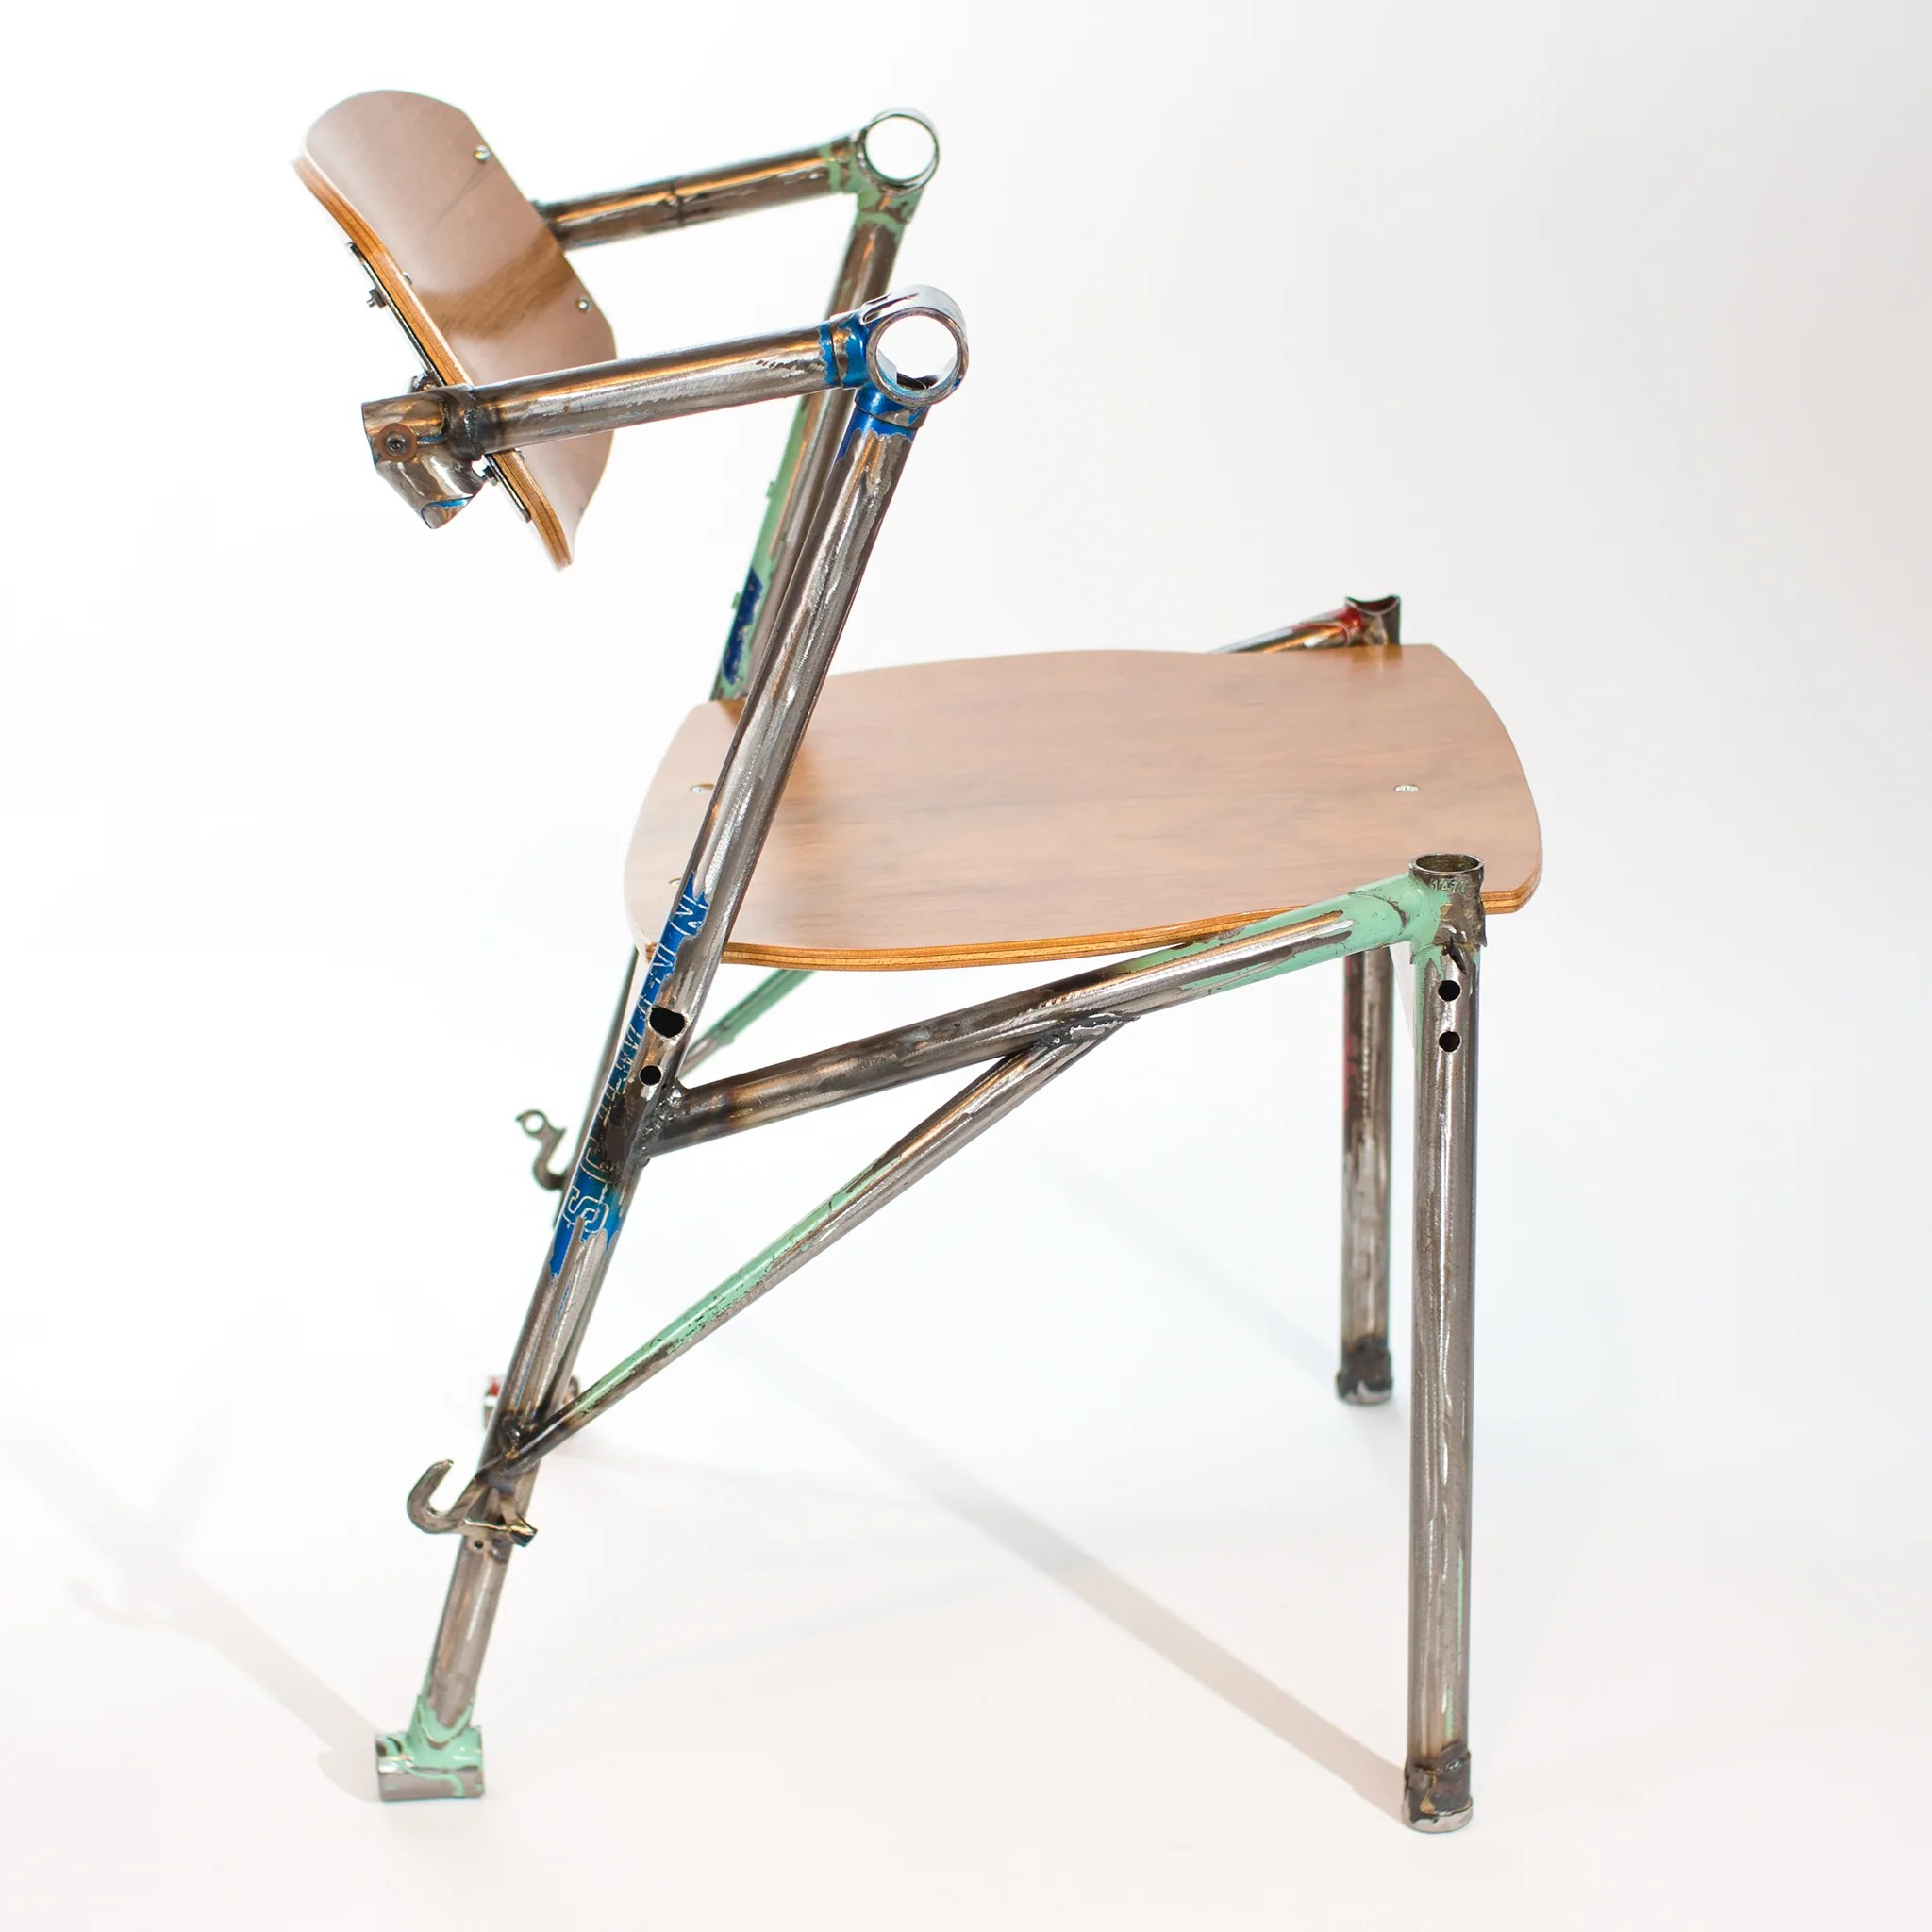 folding z chair lafuma lacing cords eric blanpied furniture bike recycled bicycle frames and bent plywood